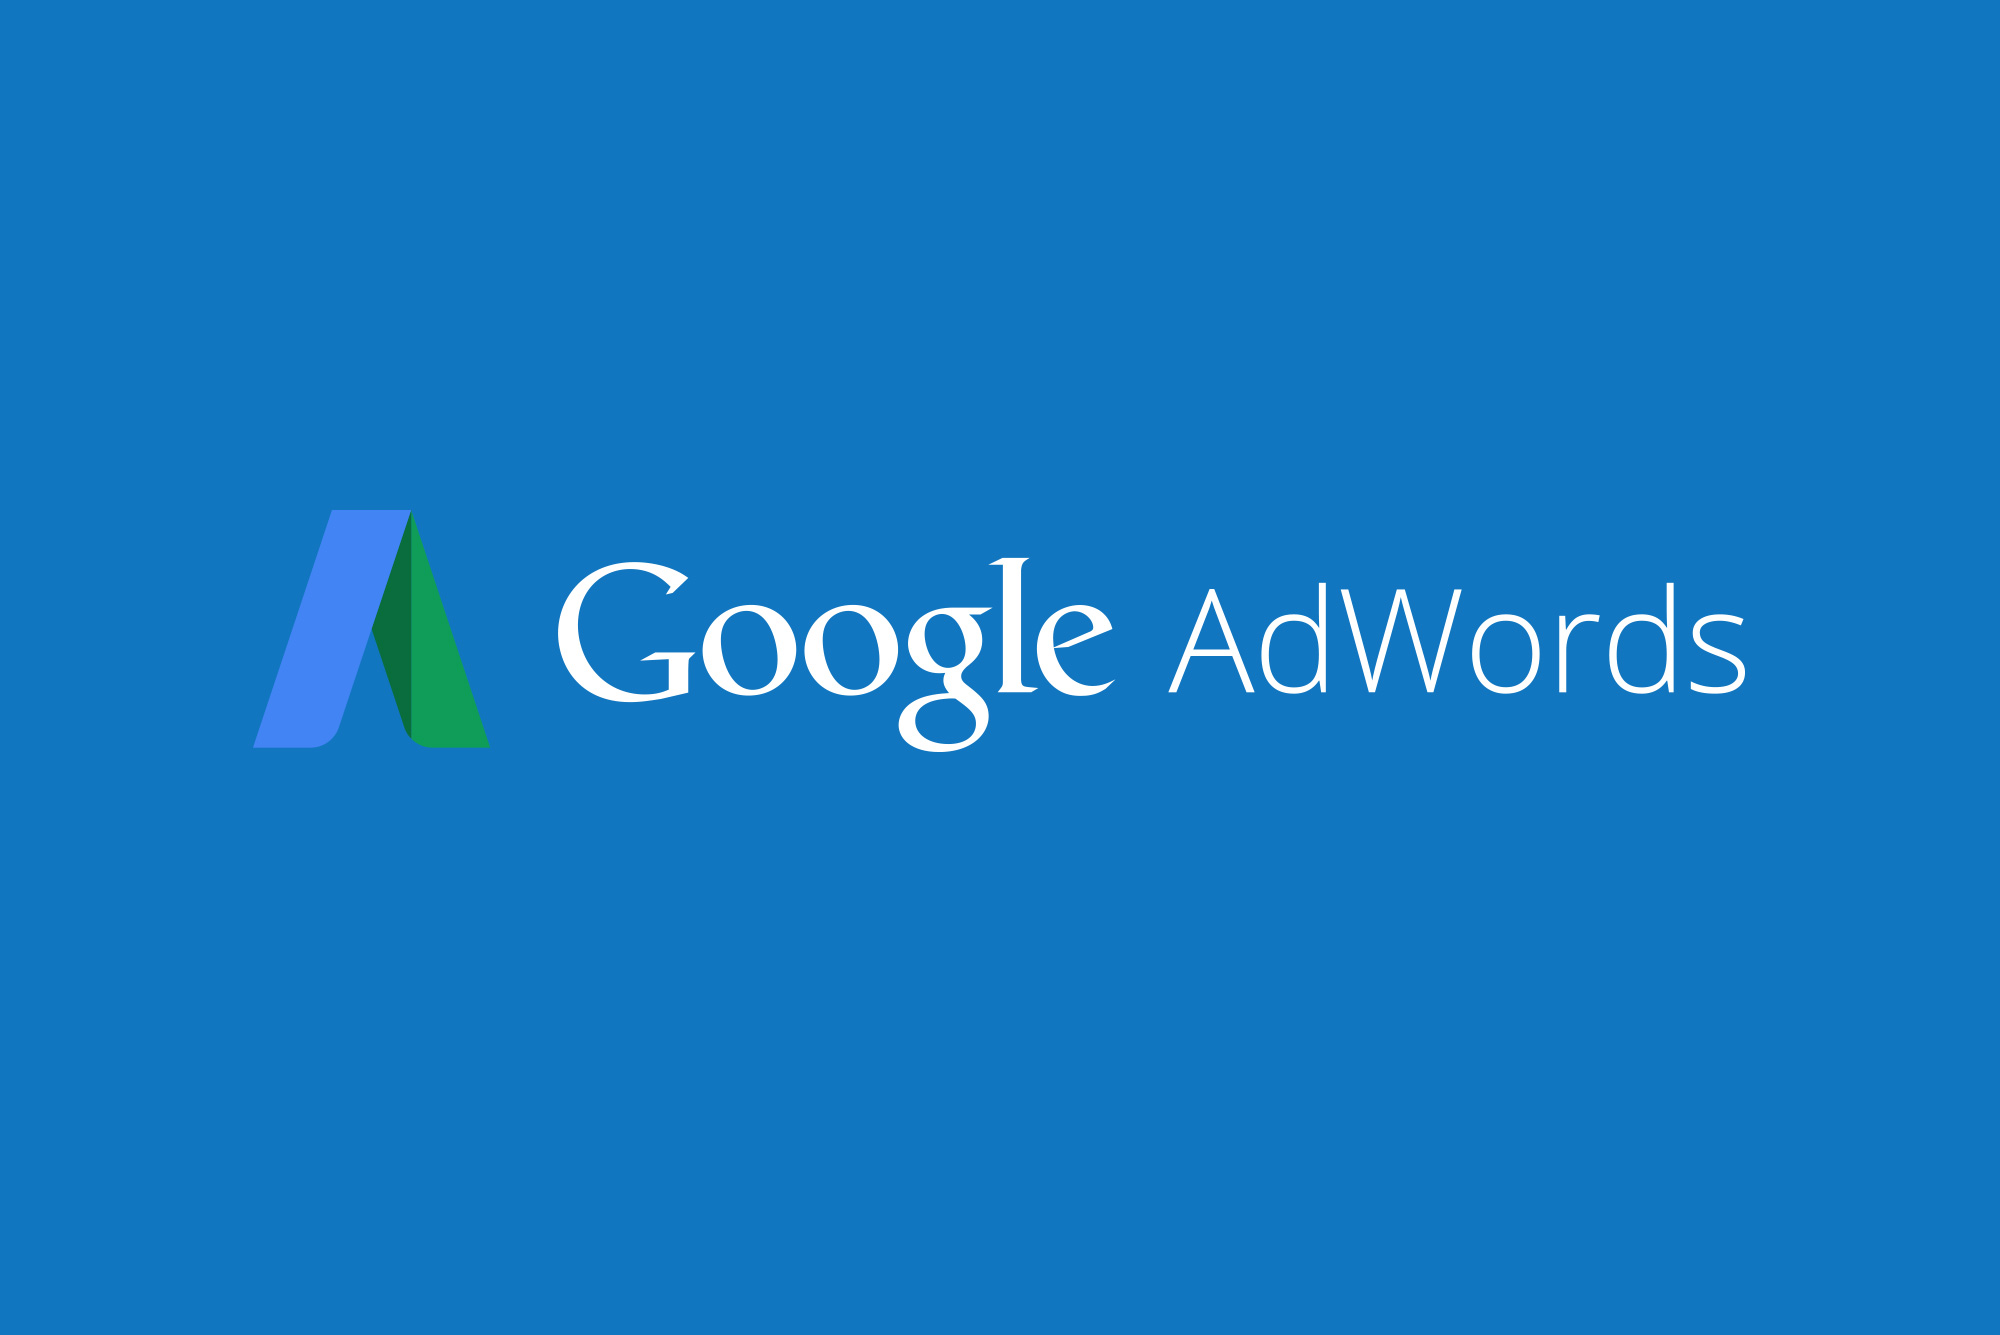 Google AdWords logo on blue background